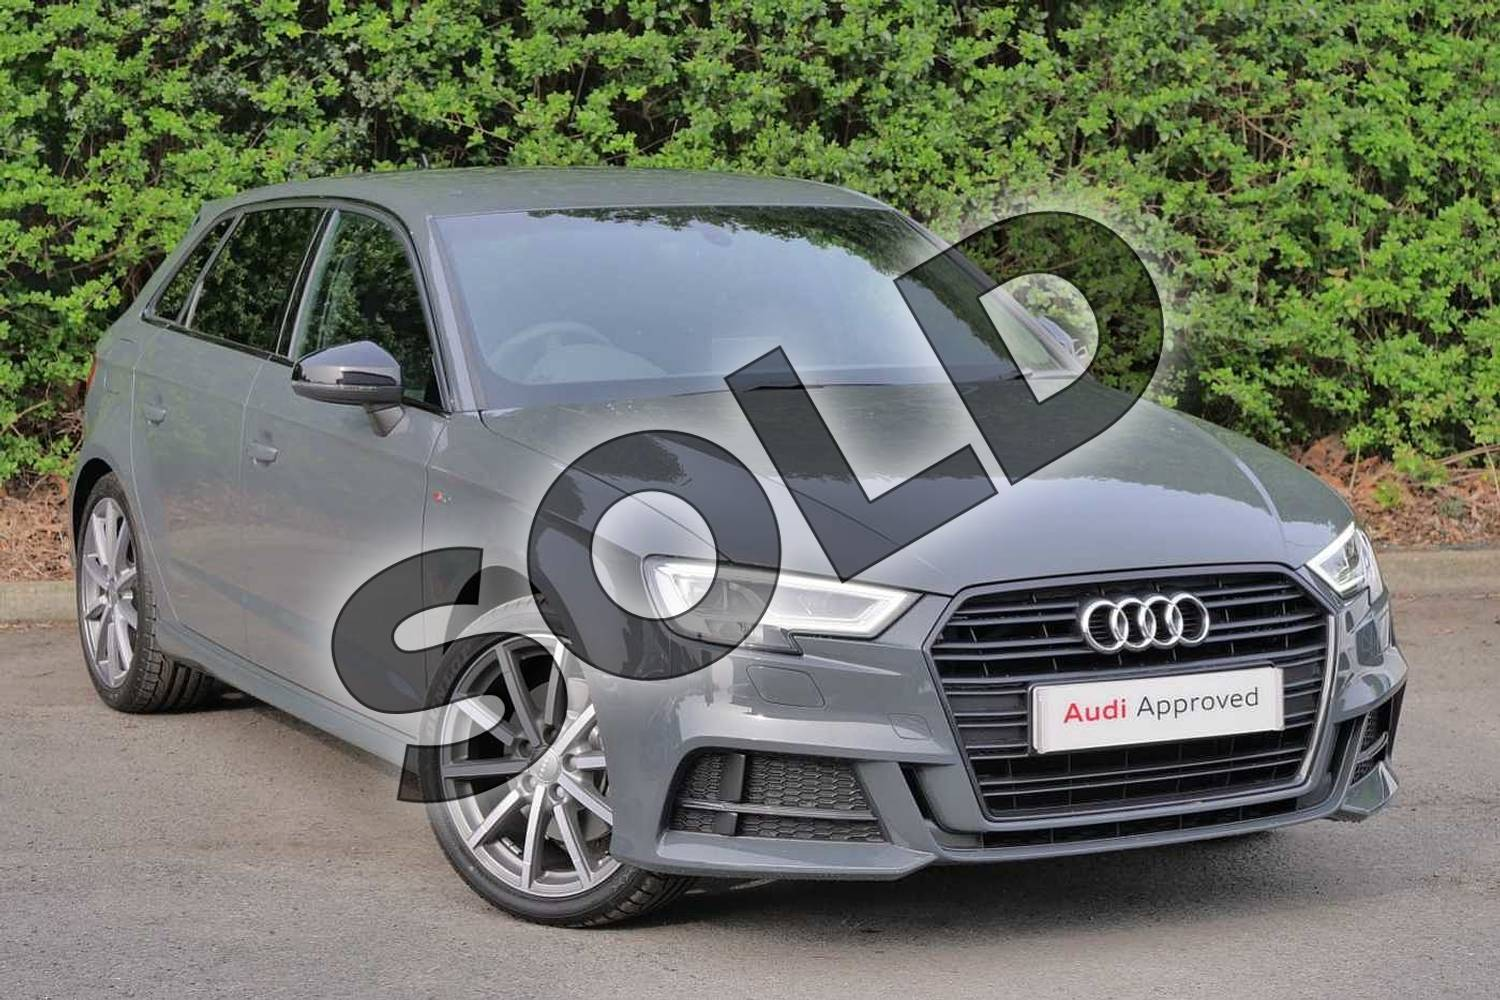 2019 Audi A3 Diesel Sportback Diesel 35 TDI Black Edition 5dr S Tronic in Nano Grey Metallic at Worcester Audi